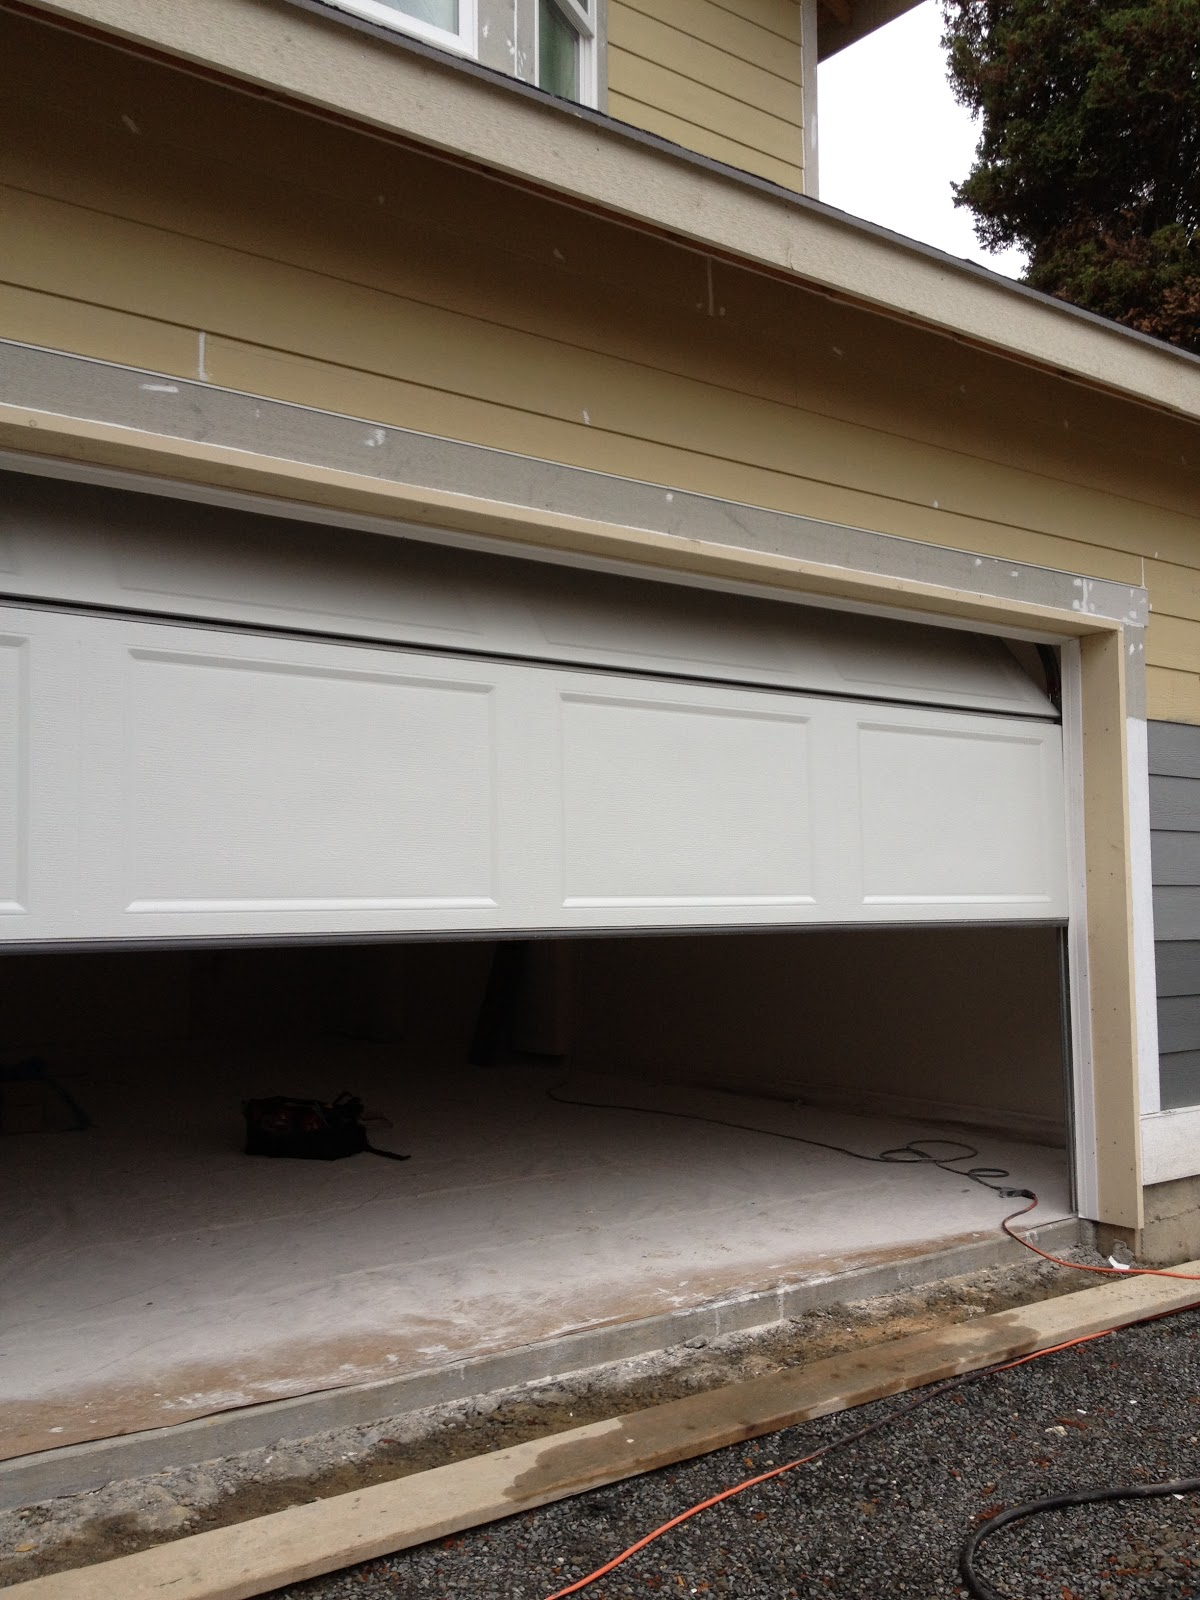 1600 #984833  Home From The Ground Up: Progress Photos Garage Door Installation save image Garage Doors Installers 37771200